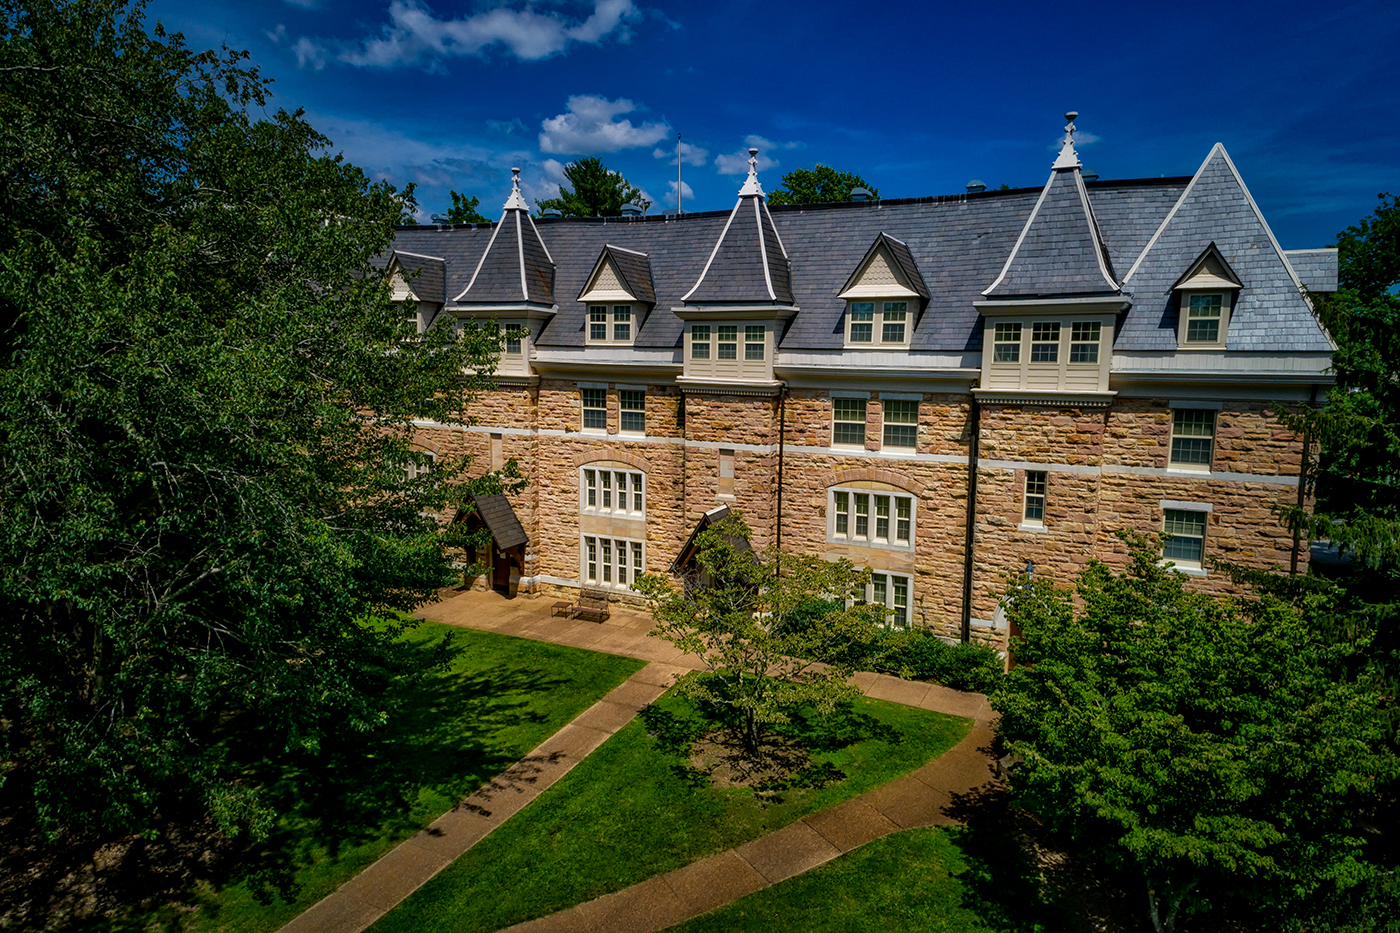 """University of the South - St. Luke's Hall   St. Luke's is a residential hall located near the center of campus at the University of the South – Sewanee. Originally built in 1887 to house the Seminary, this building was refurbished to its former glory to now hold a co-ed residence hall that houses around 103 students. On the main floor, The Oratory was preserved to serve as a study lounge with a section of """"seminar style"""" seating for study groups and interactive discussions."""